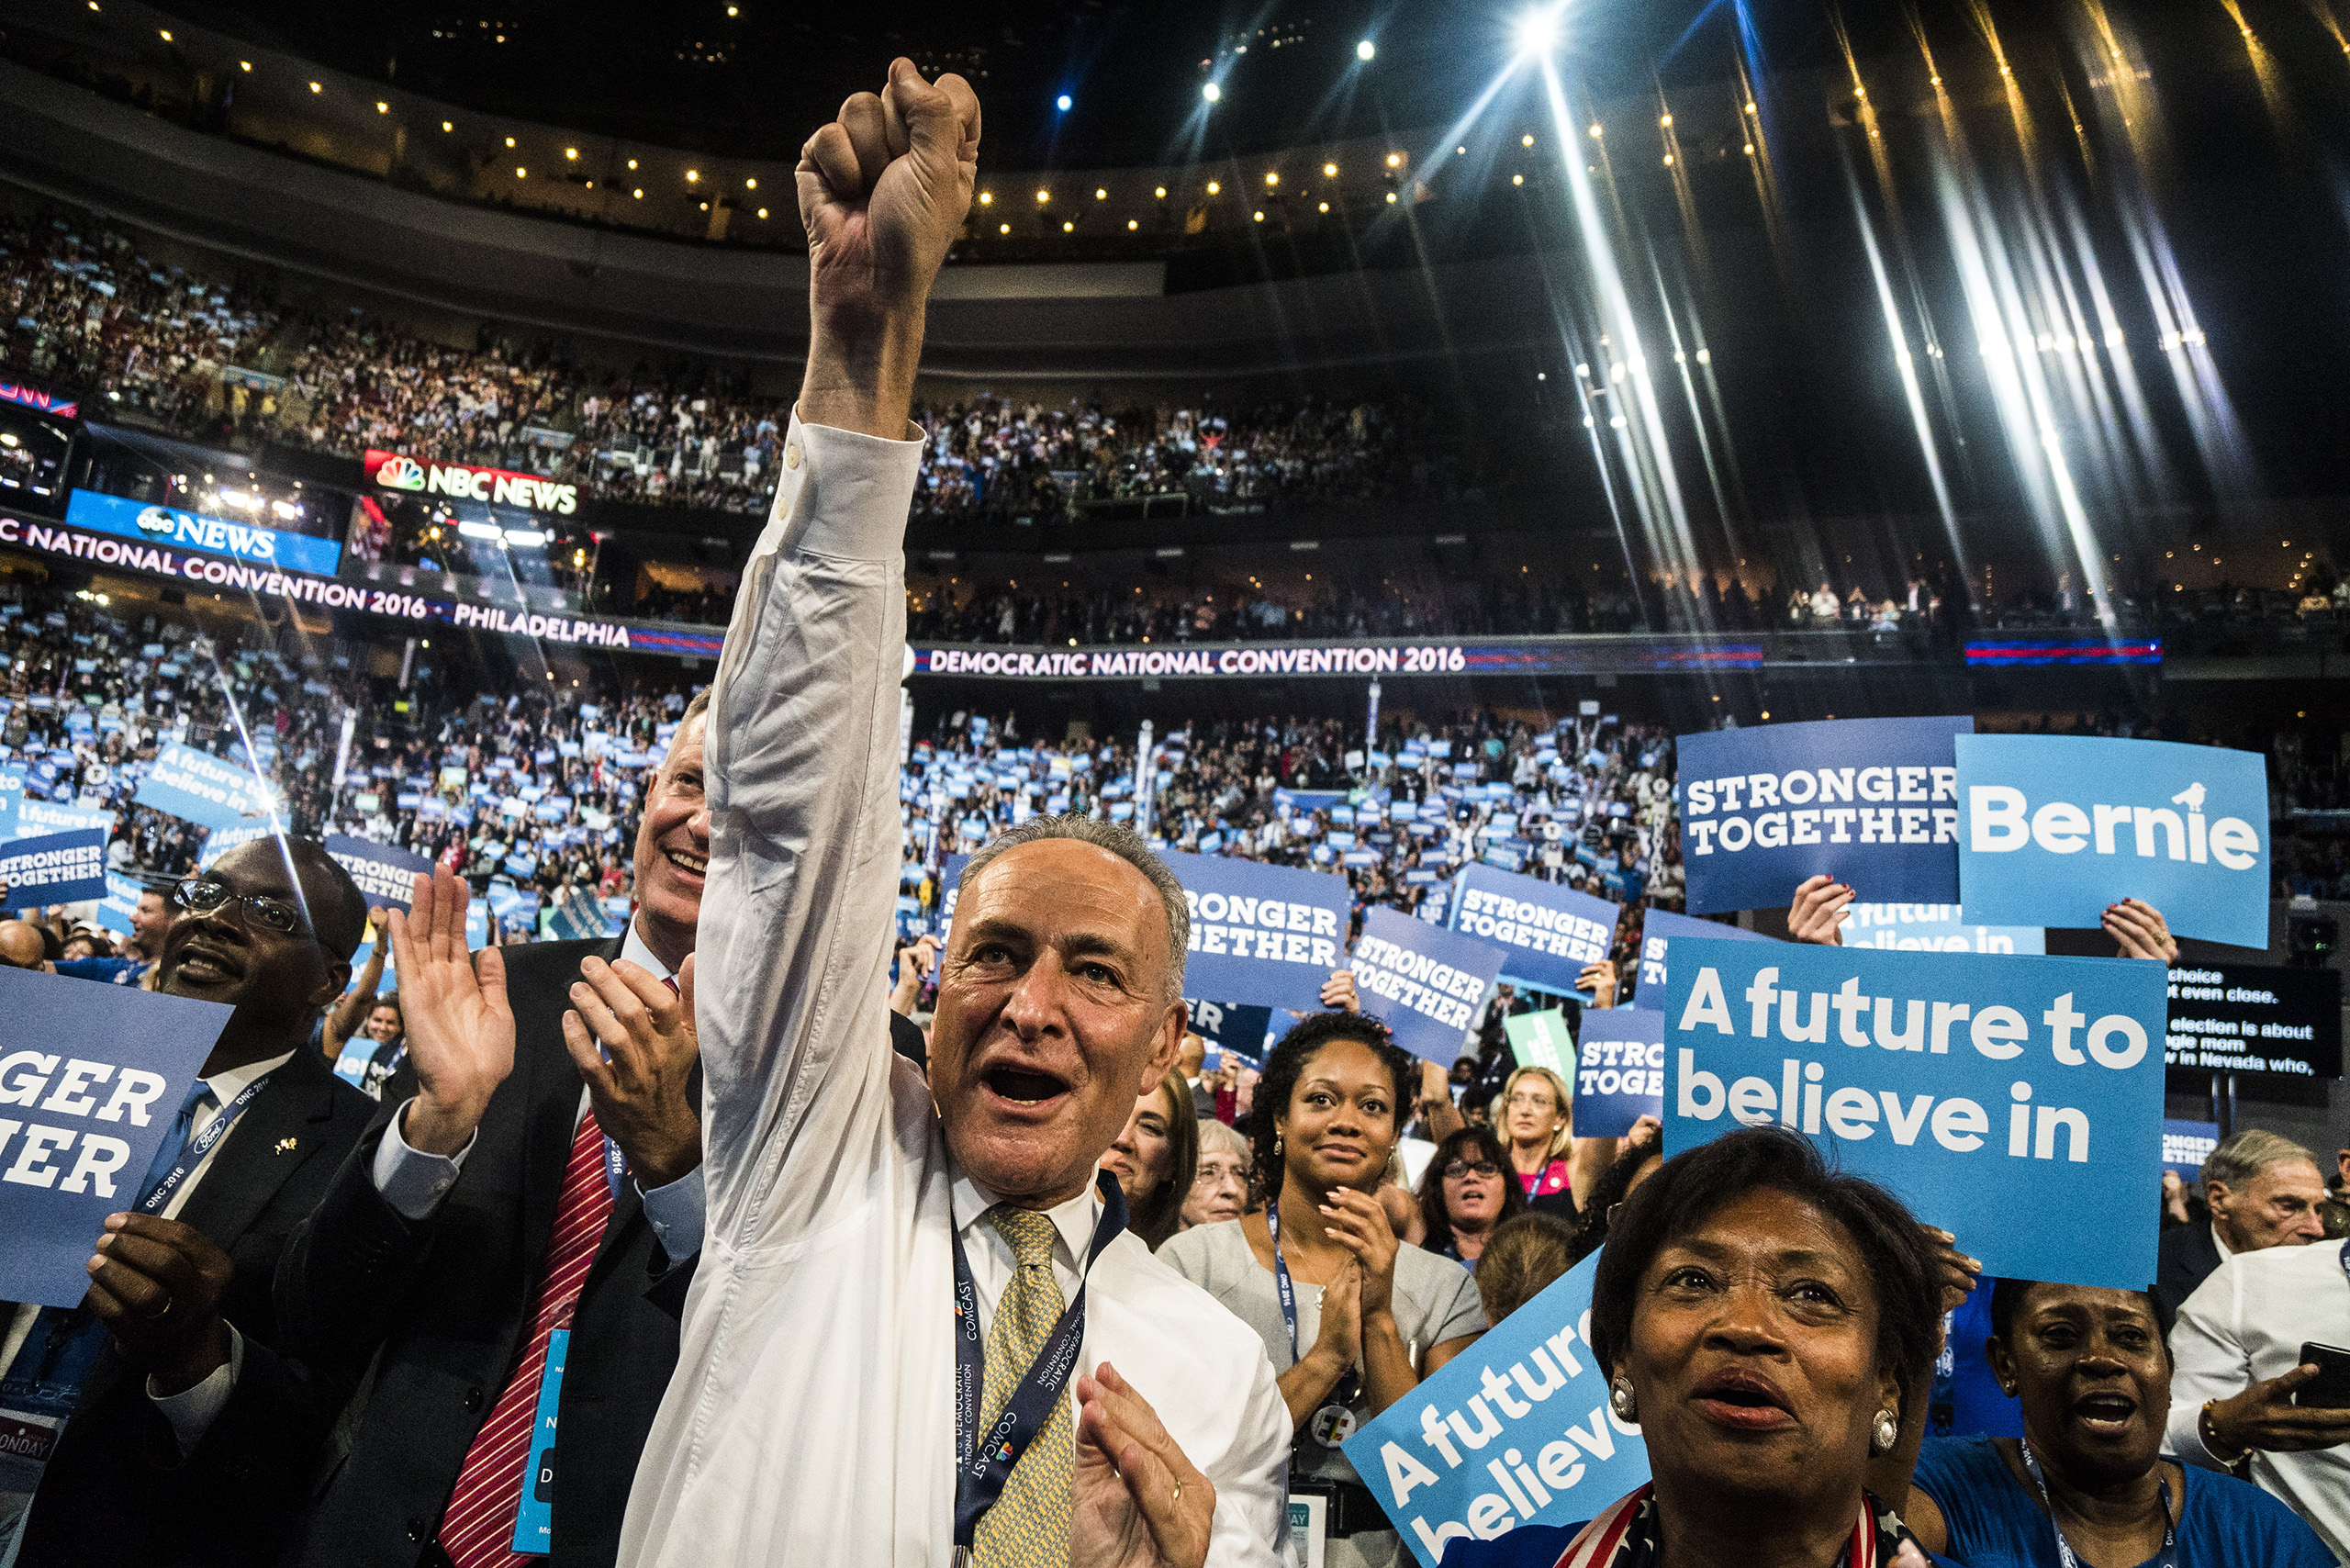 U.S. Sen. Chuck Shumeron the floor of the Democratic National Convention on Monday, July 25, 2016.